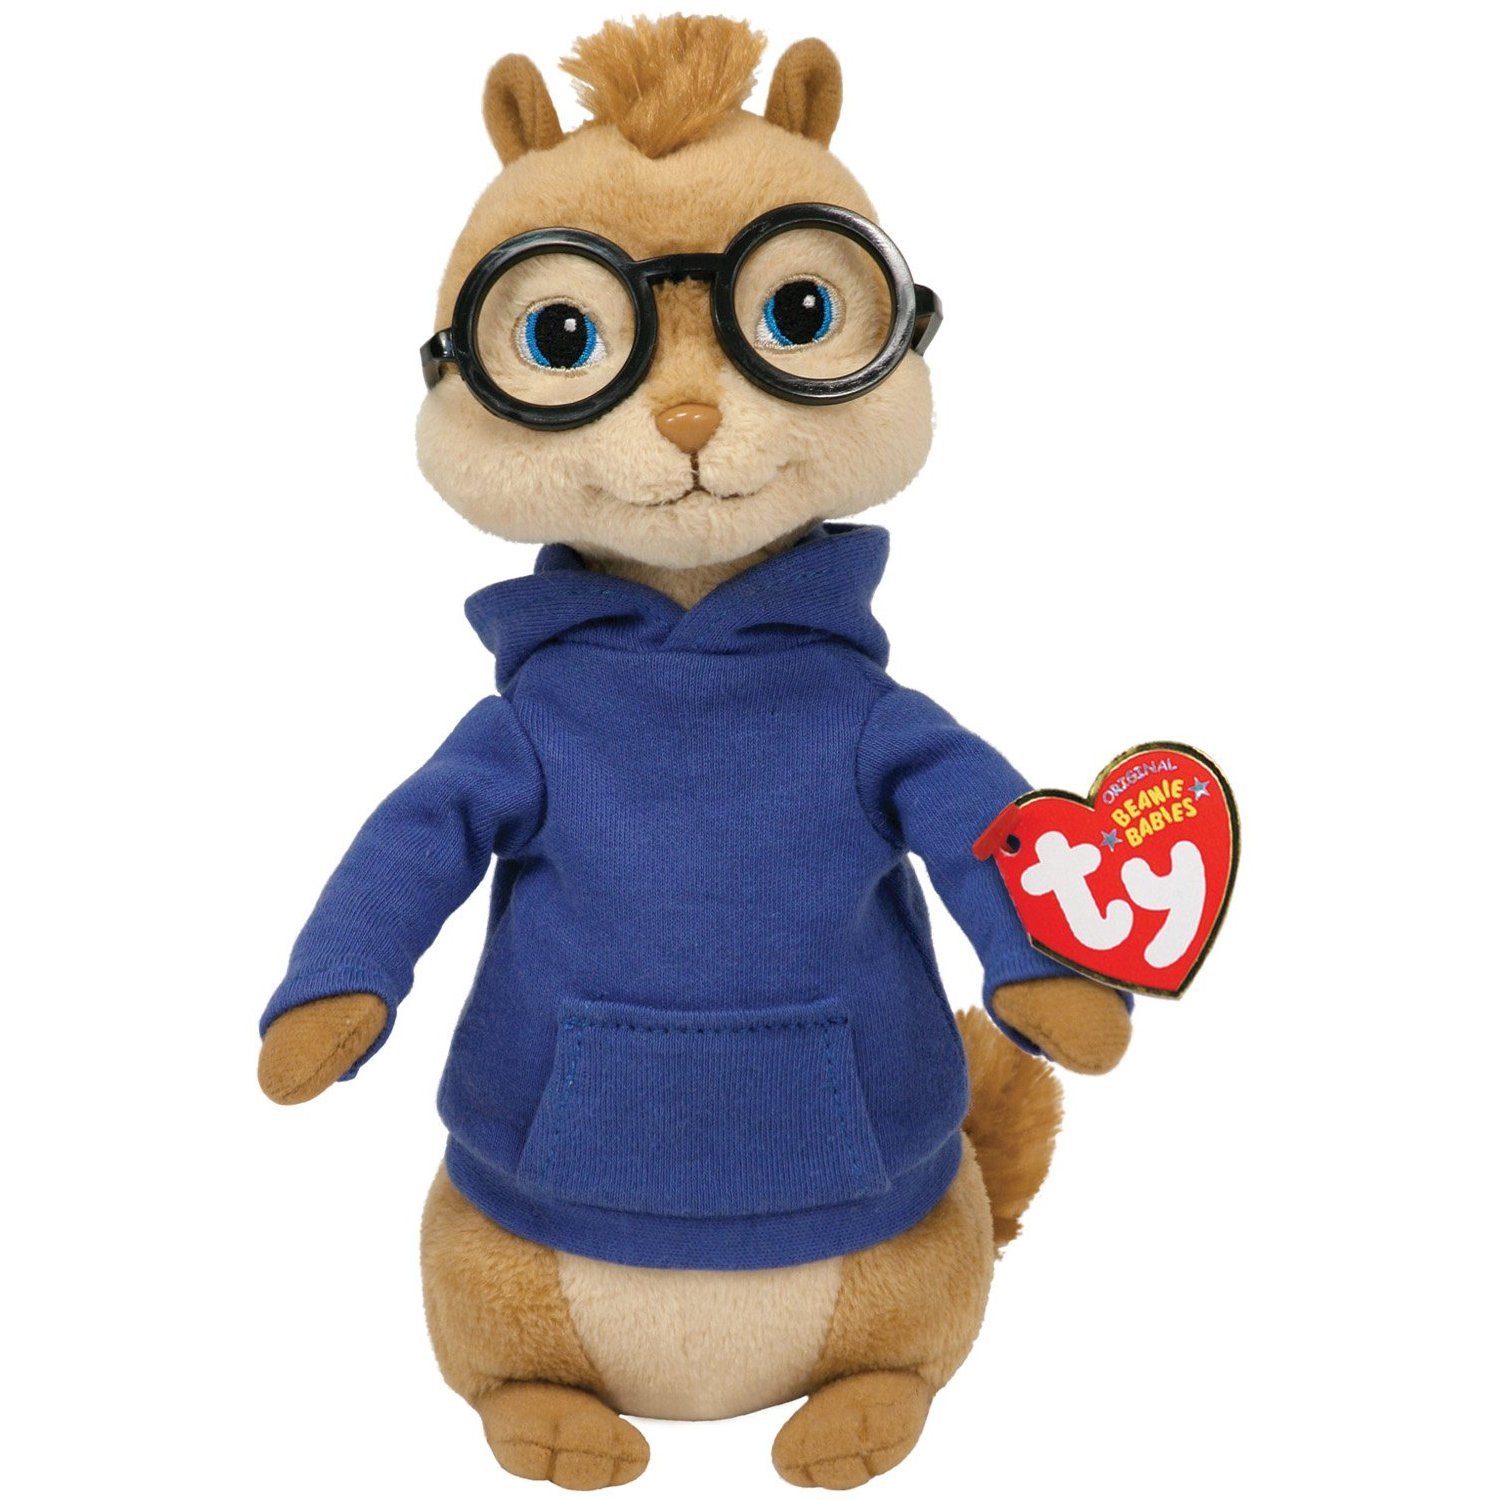 TY Toys Ty Beanie Baby Simon, Alvin and the Chipmunks at Sears.com